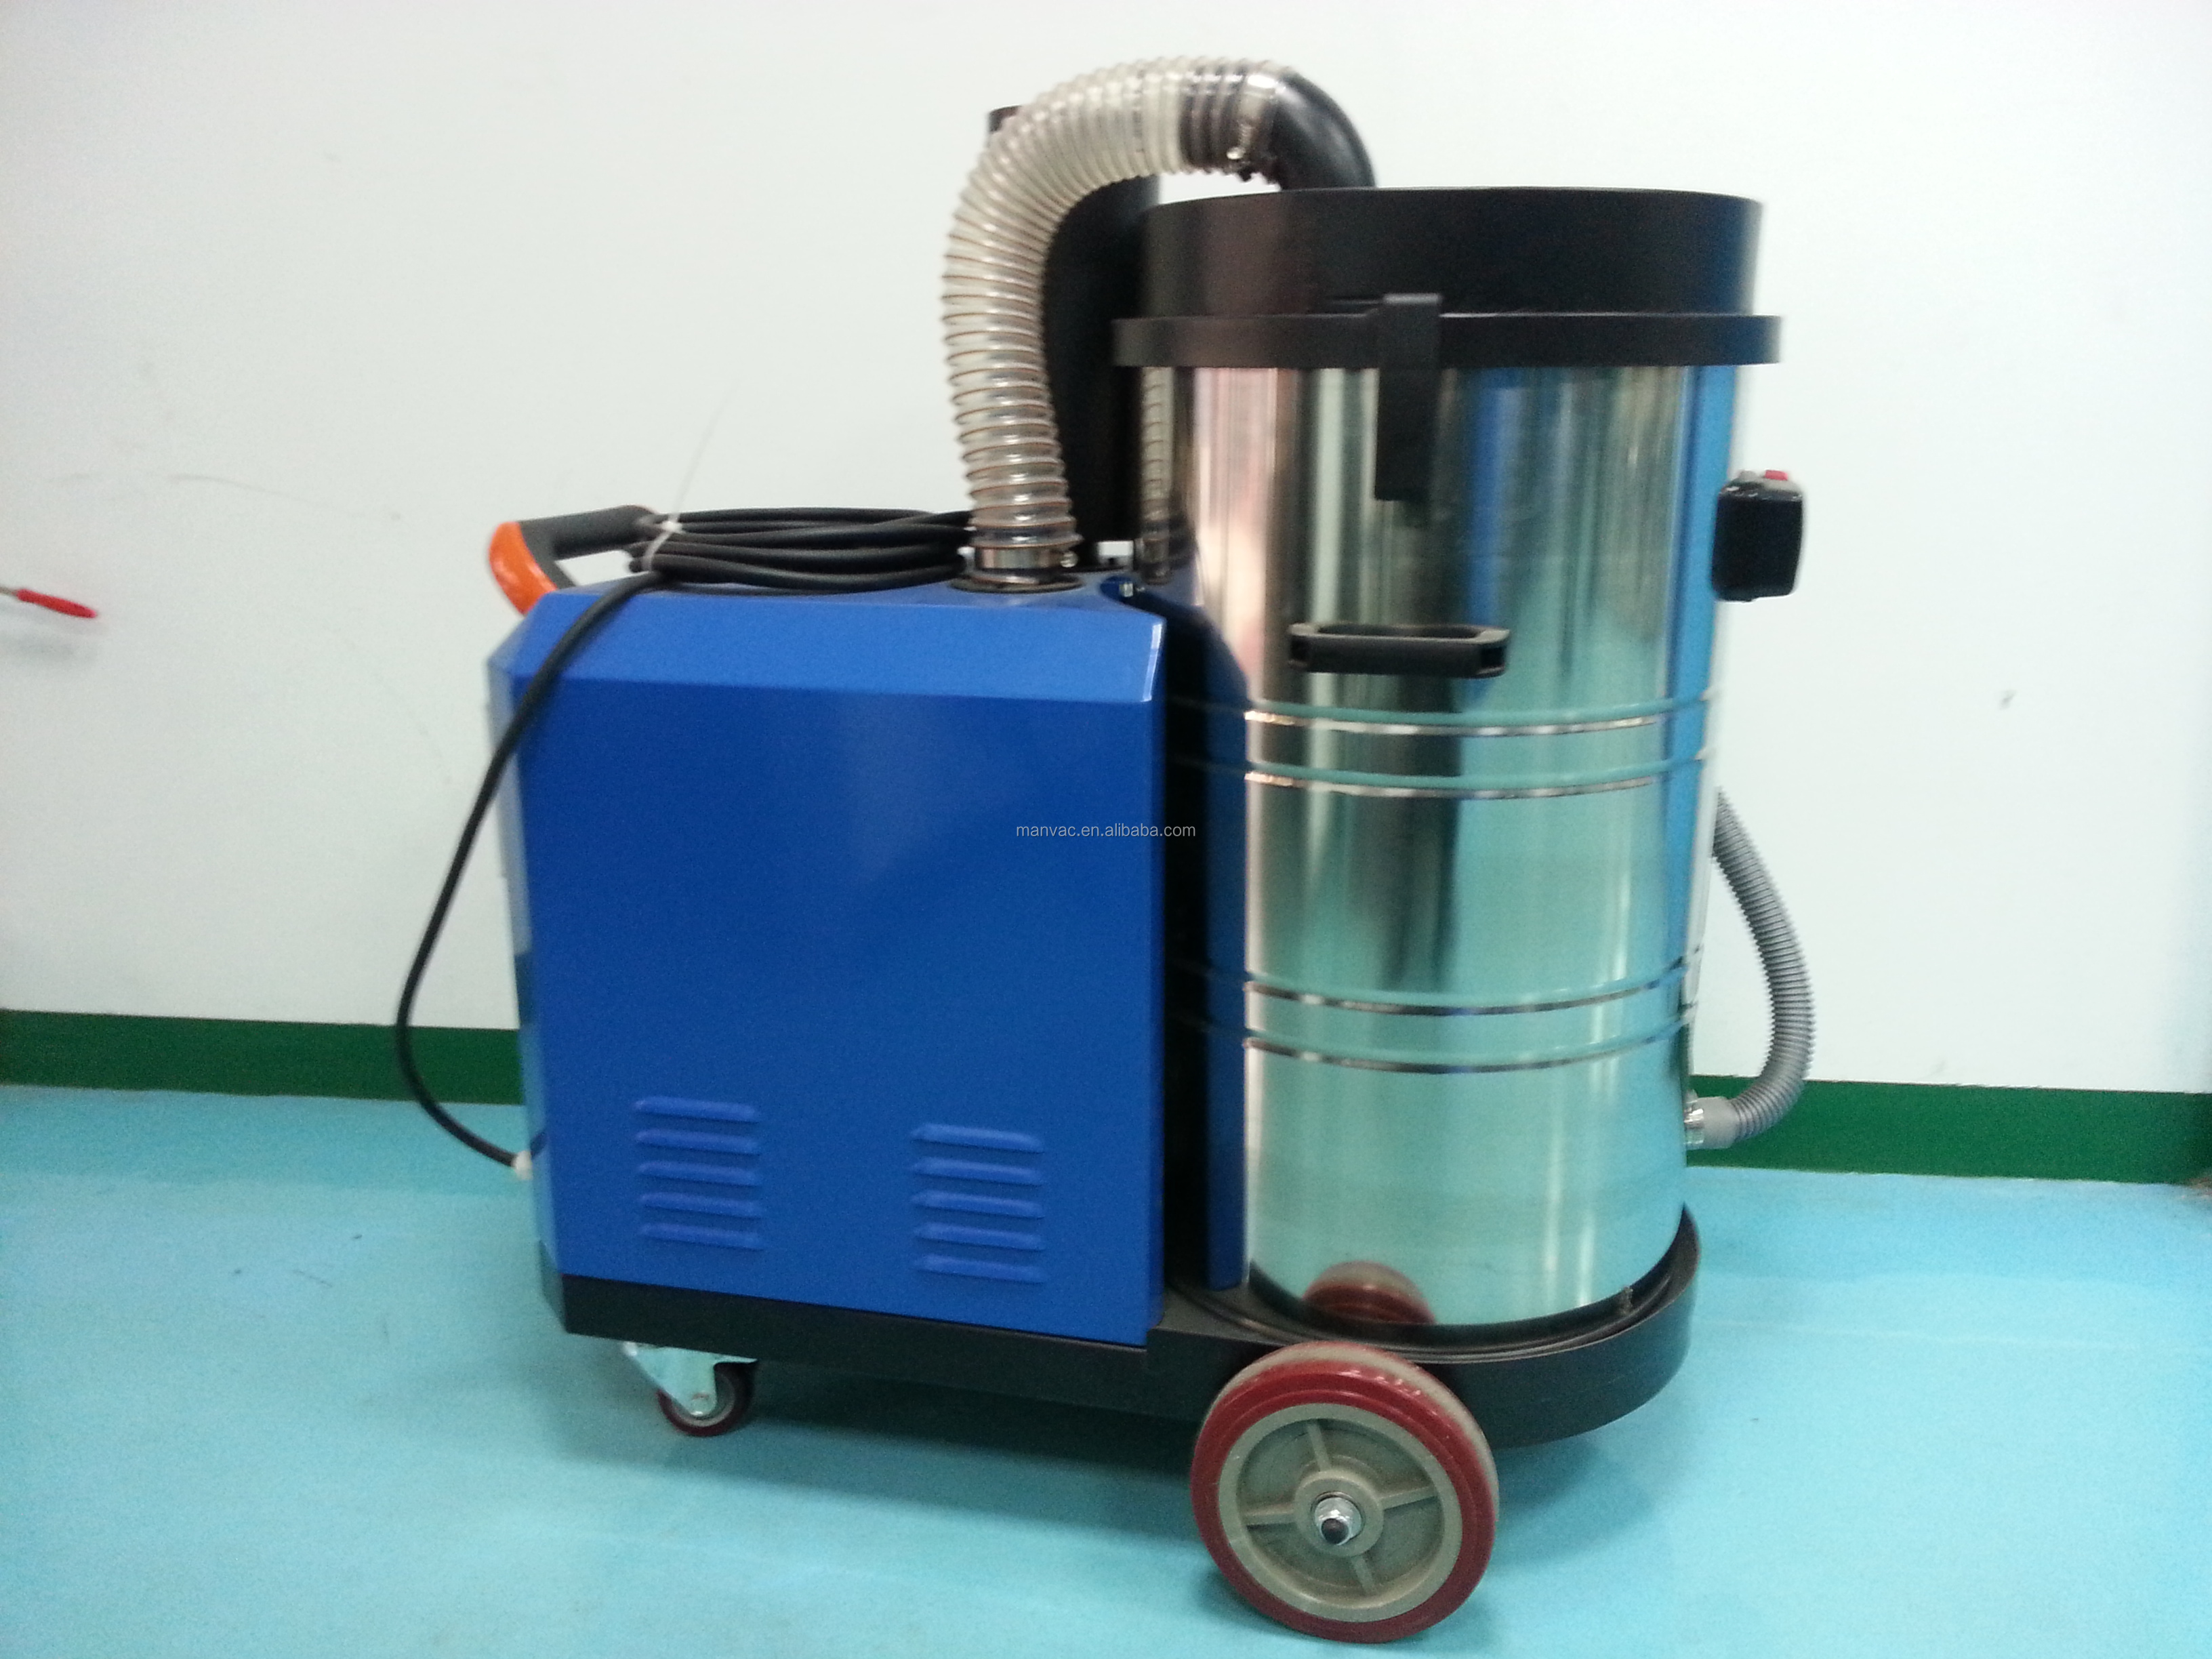 Water Suction Vacuum Cleaner Water Suction Vacuum Cleaner